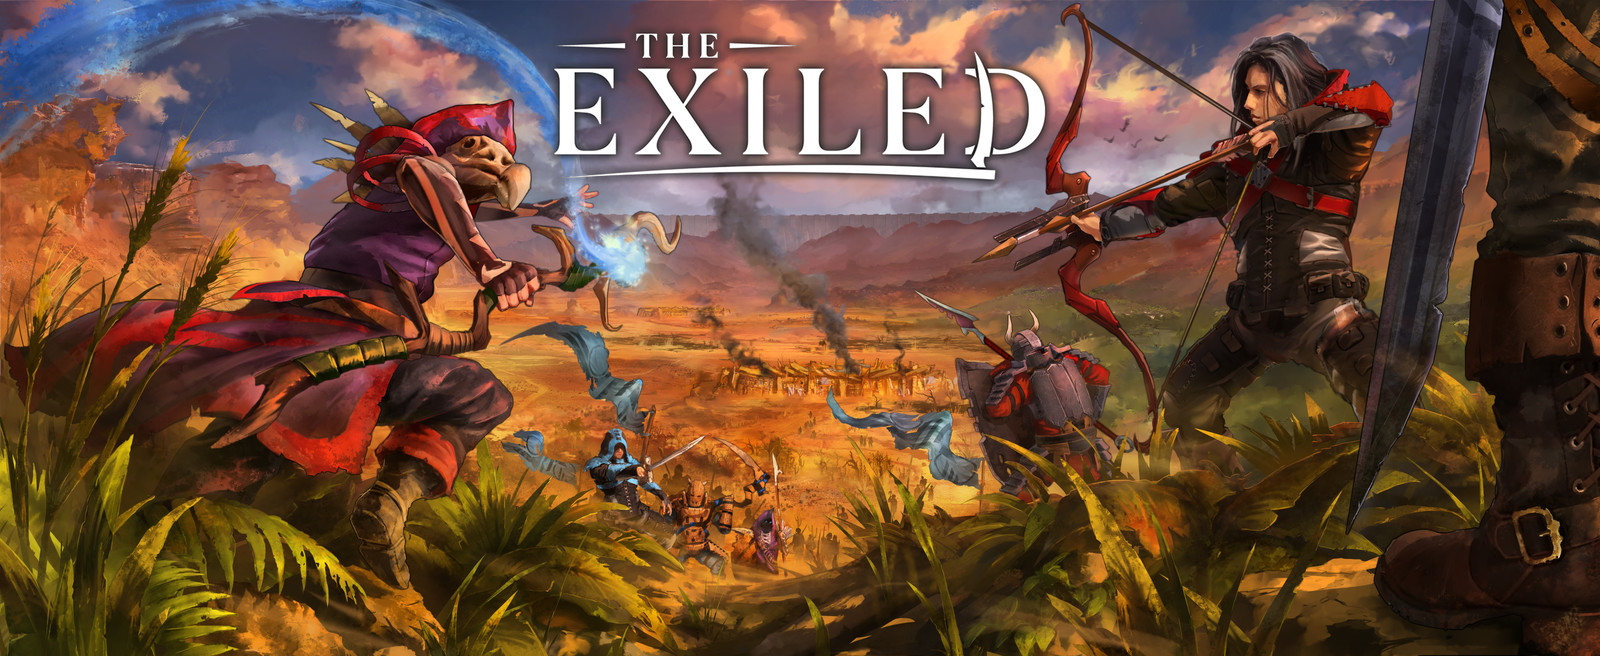 The Exiled: Promo Artwork